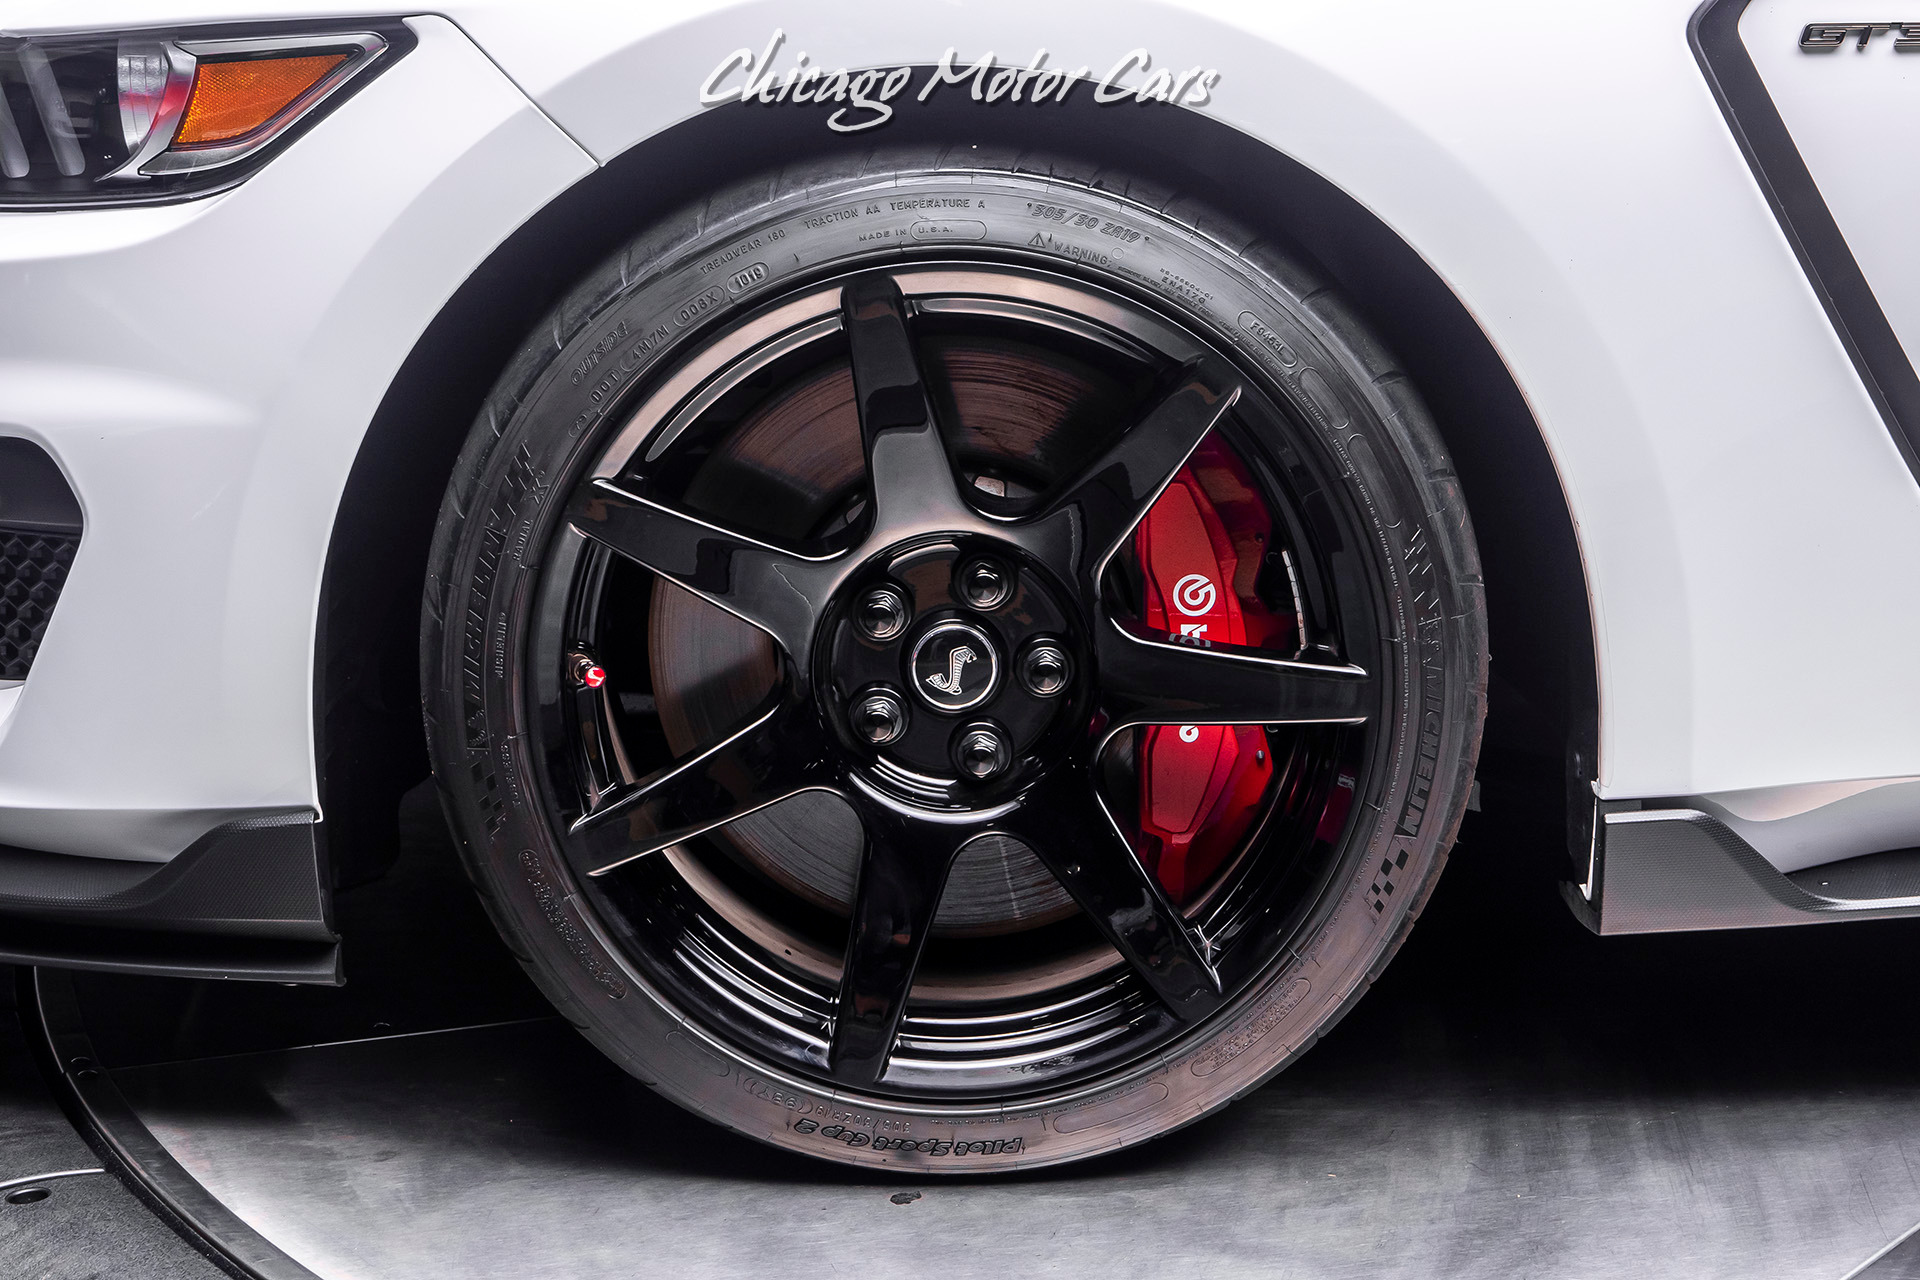 Used-2019-Ford-Mustang-Shelby-GT350R-920A-EQUIPMENT-GROUP-ELECTRONICS-PKG-ONLY-600-MILES